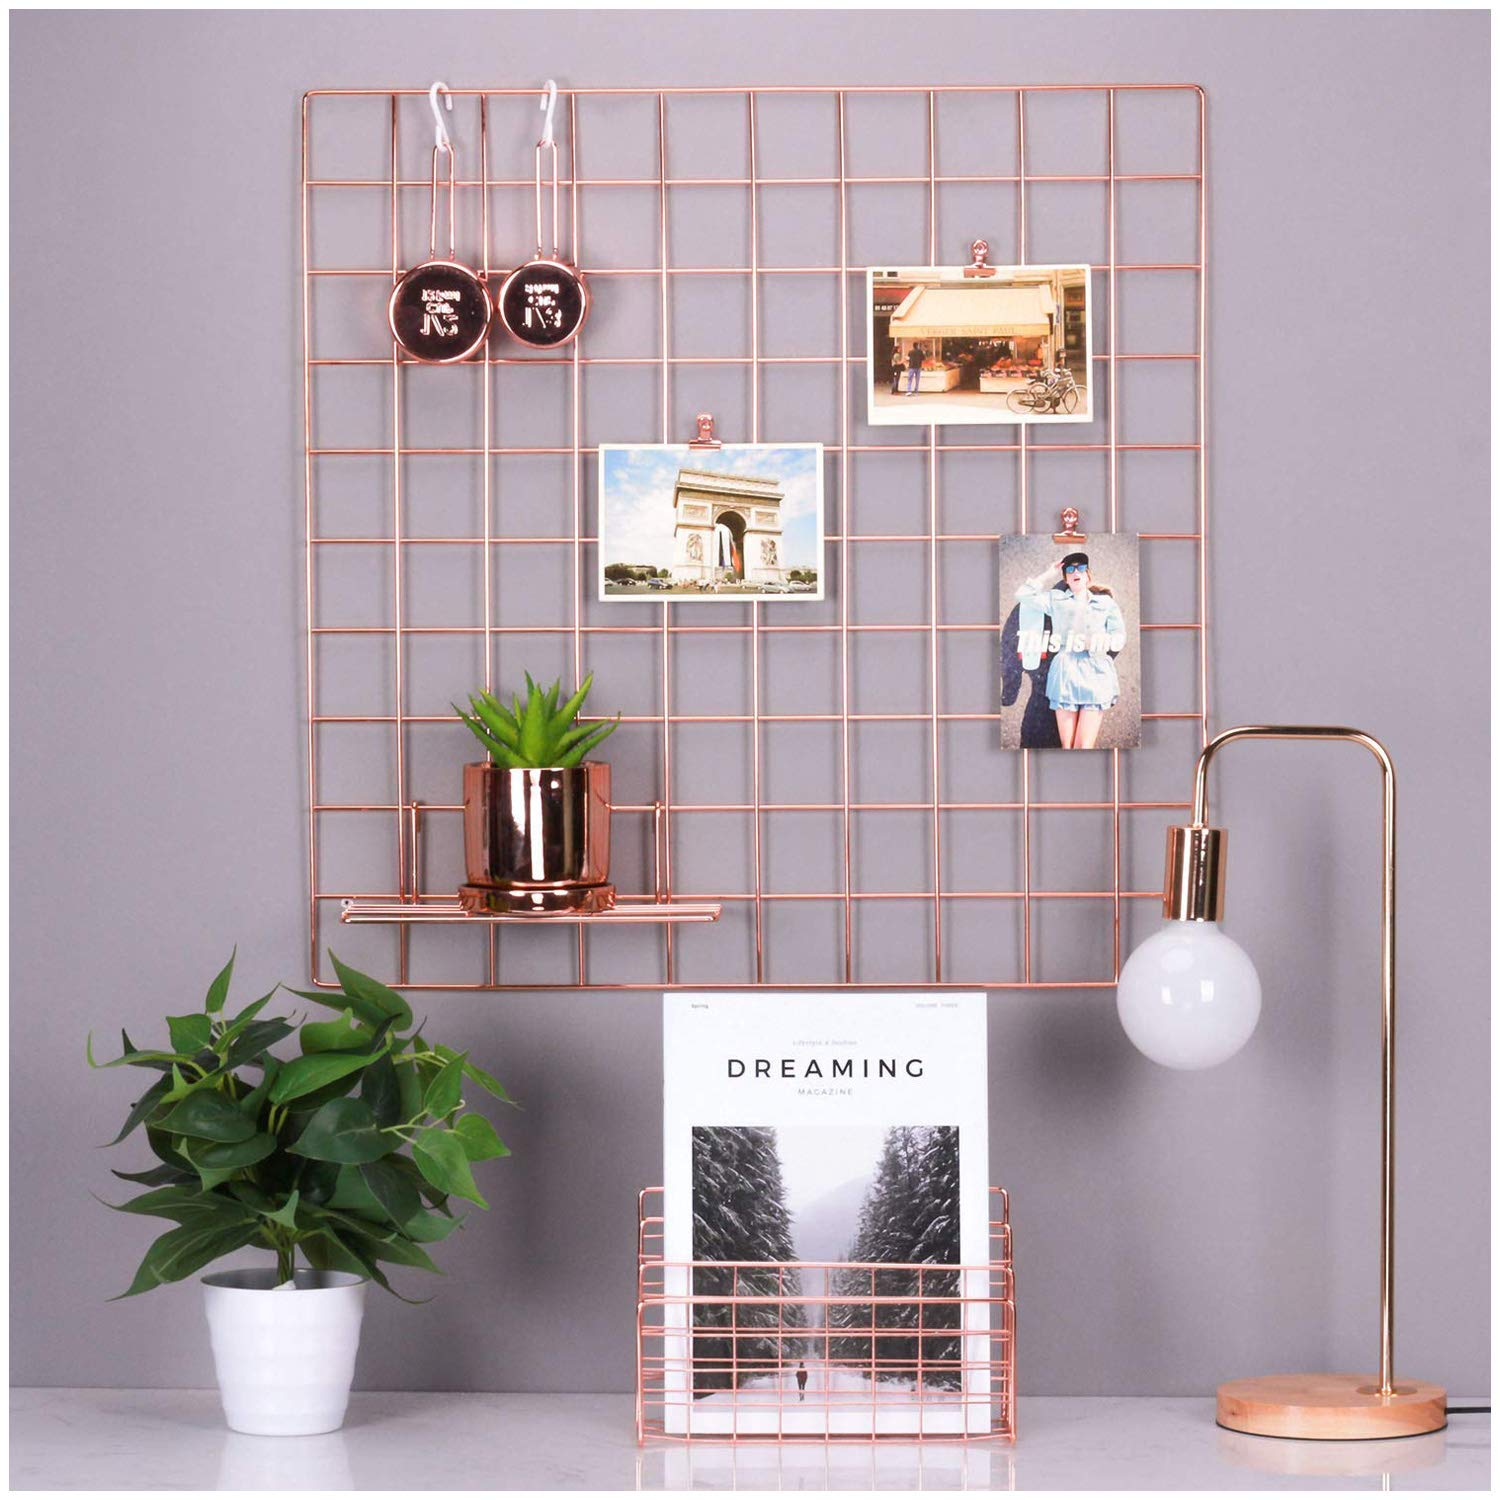 Simmer Stone Rose Gold Wall Grid Panel for Photo Hanging Display & Wall Decoration Organizer, Multi-functional Wall Storage Display Grid, 5 Clips & 4 Nails Offered, Set of 1, Size 23.6'' x 23.6'' Square